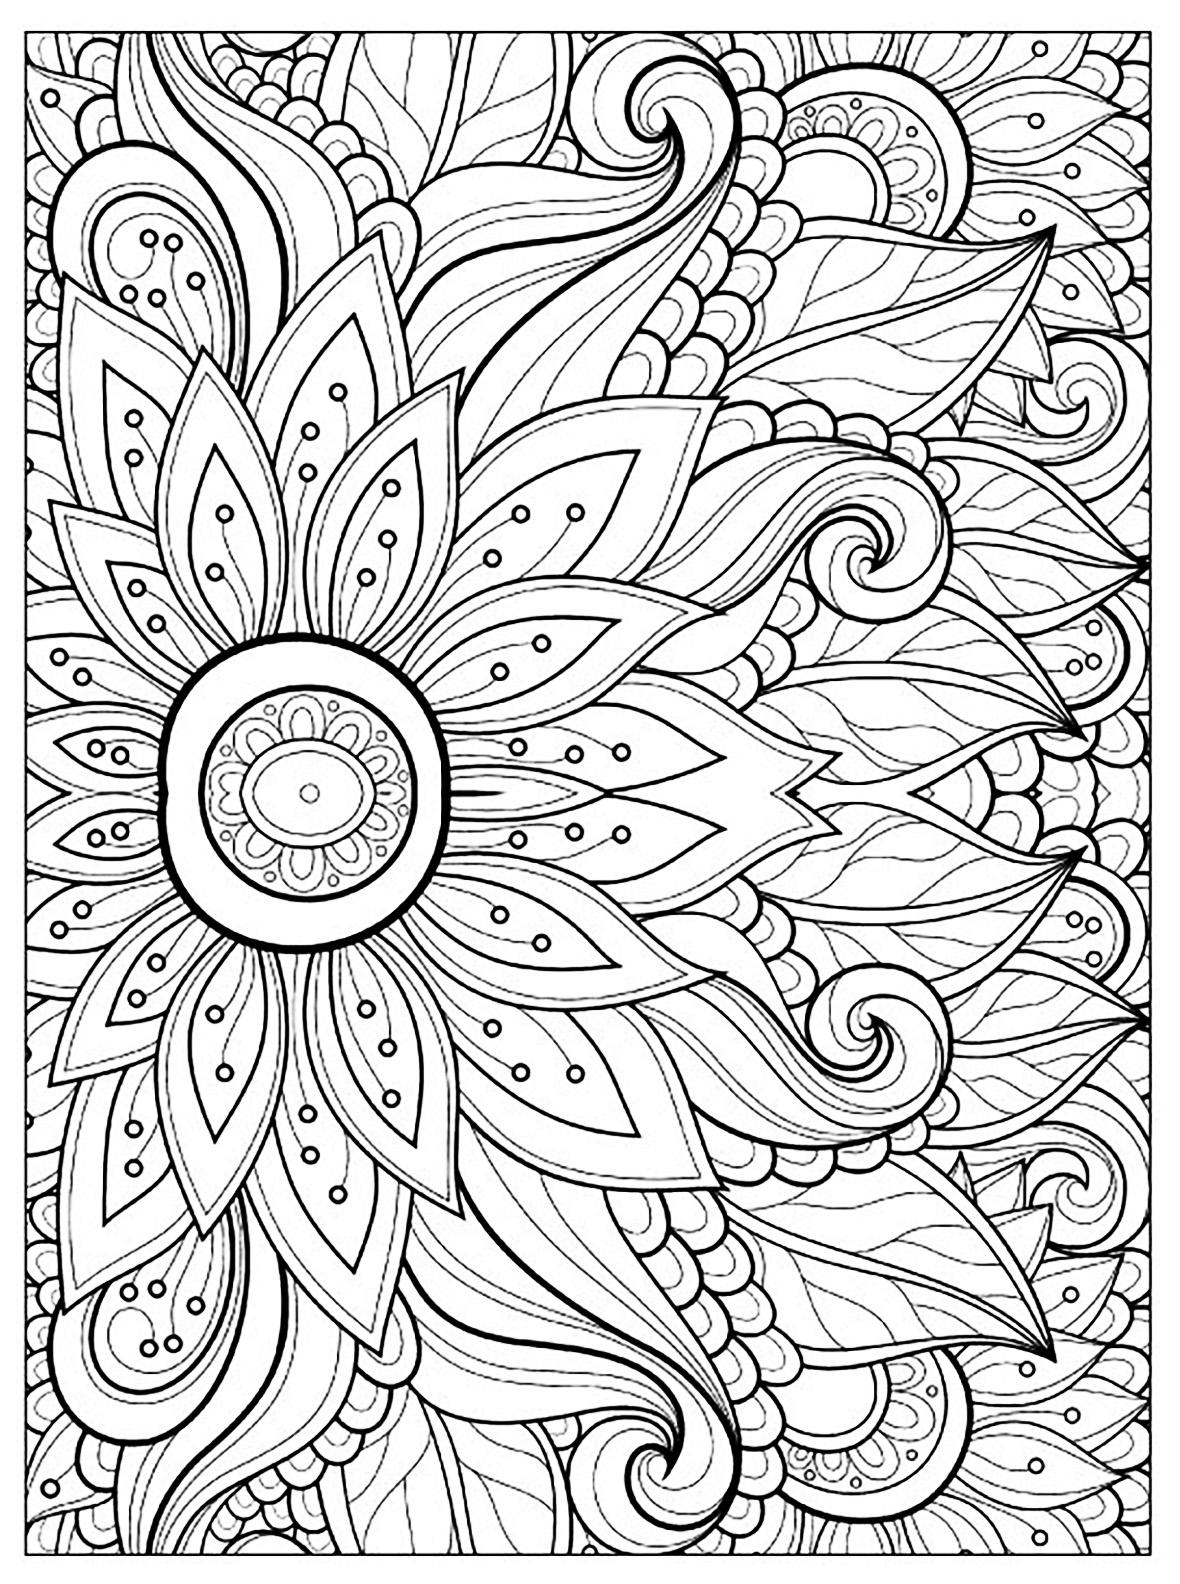 coloring picture of flower flower coloring pages for adults best coloring pages for of picture coloring flower